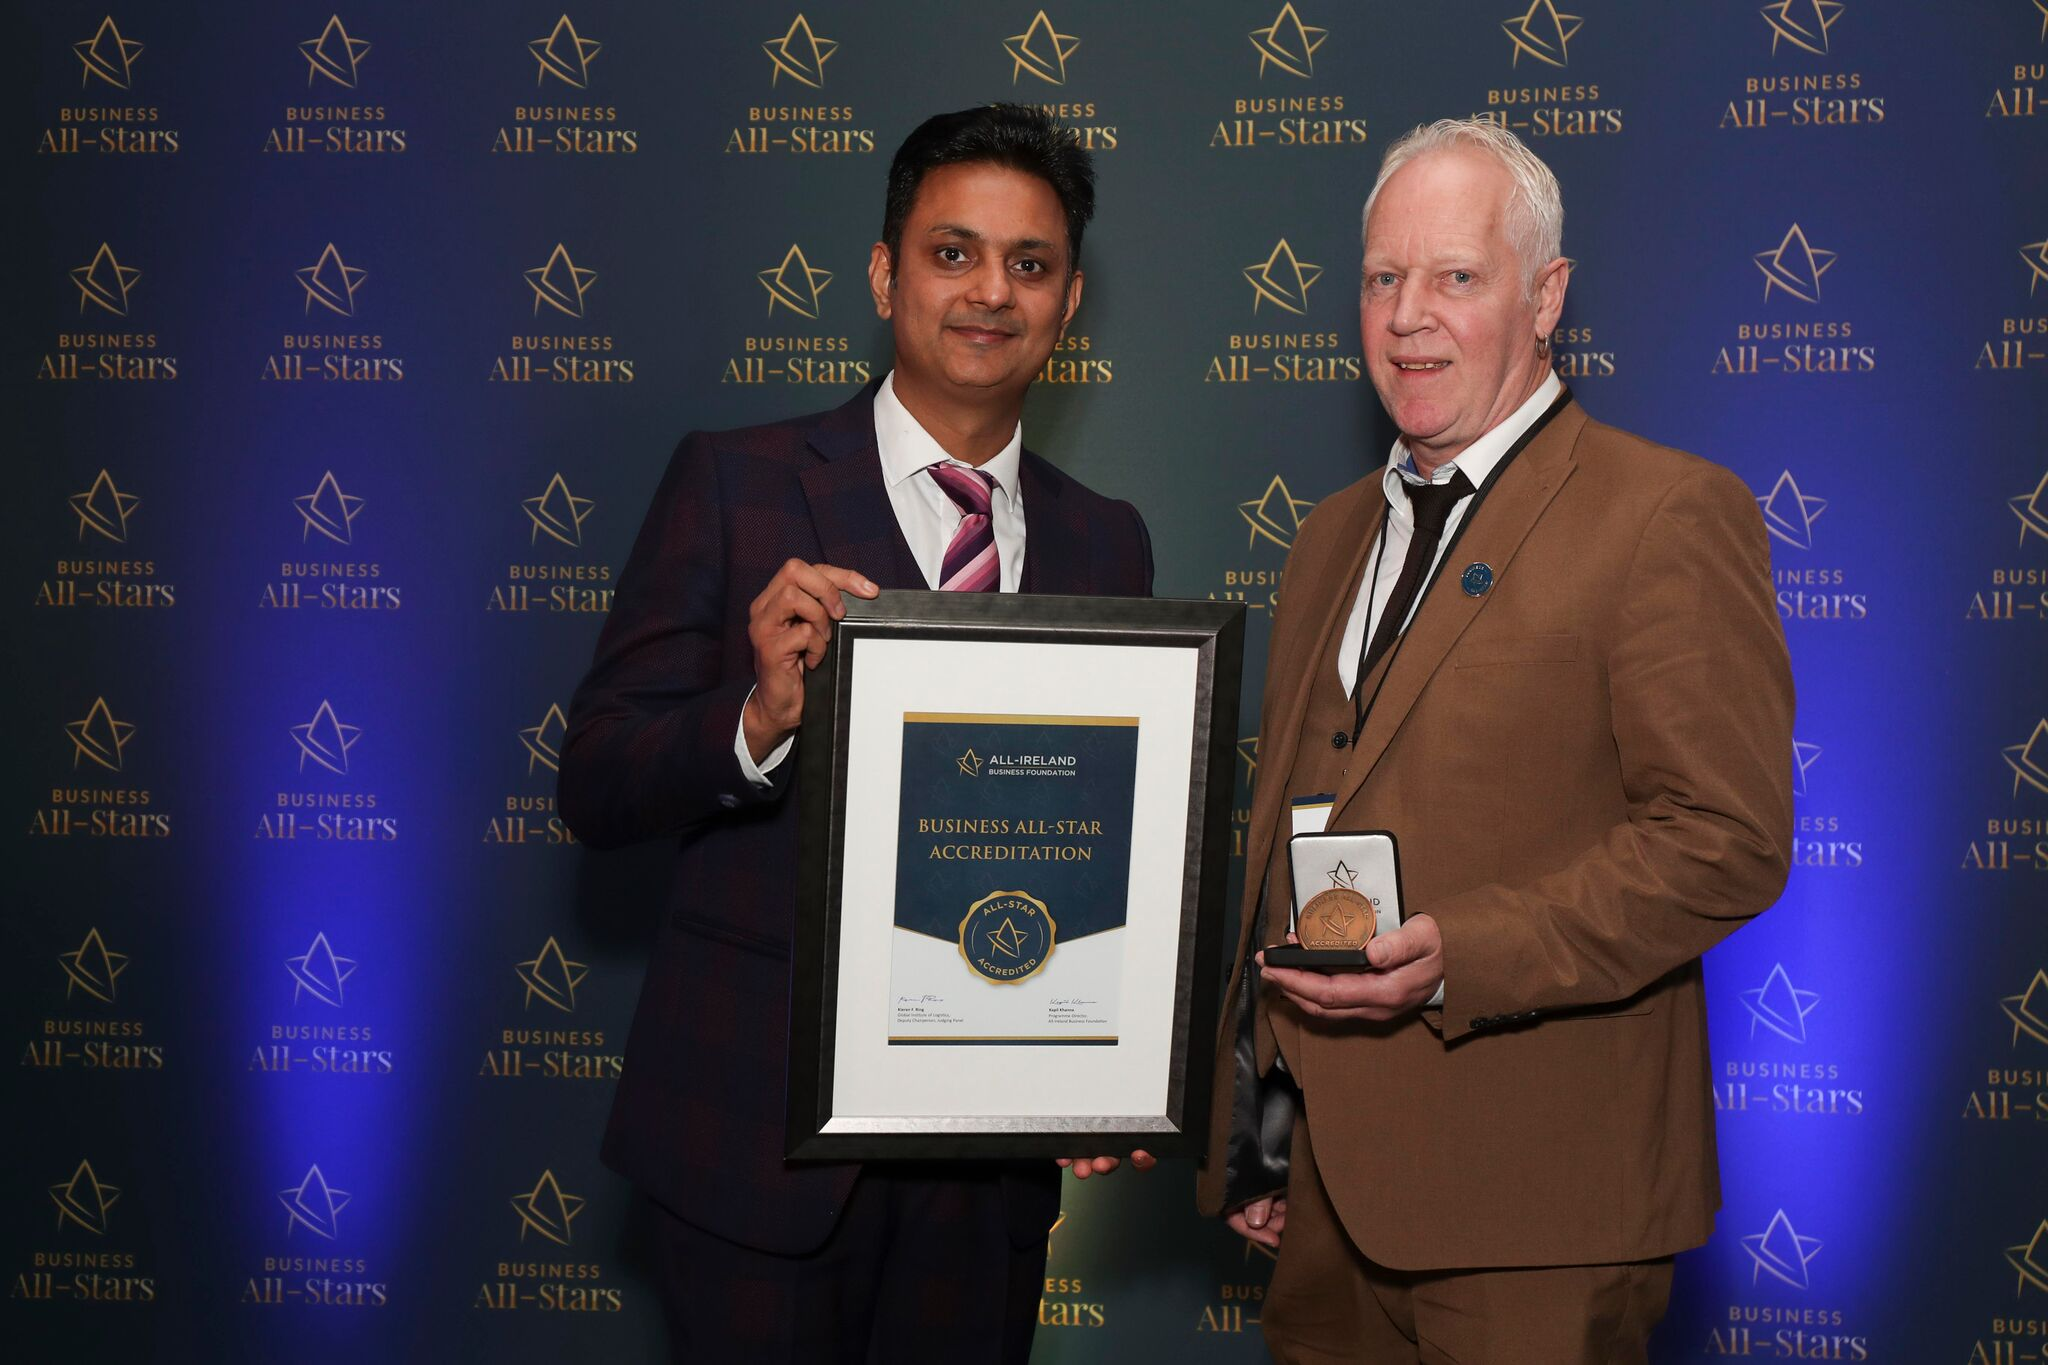 CAPTION: Philip O'Neil - Hollywood LED Letters, receiving Business All-Star Accreditation from Kapil Khanna, MD, AIBF at Croke Park